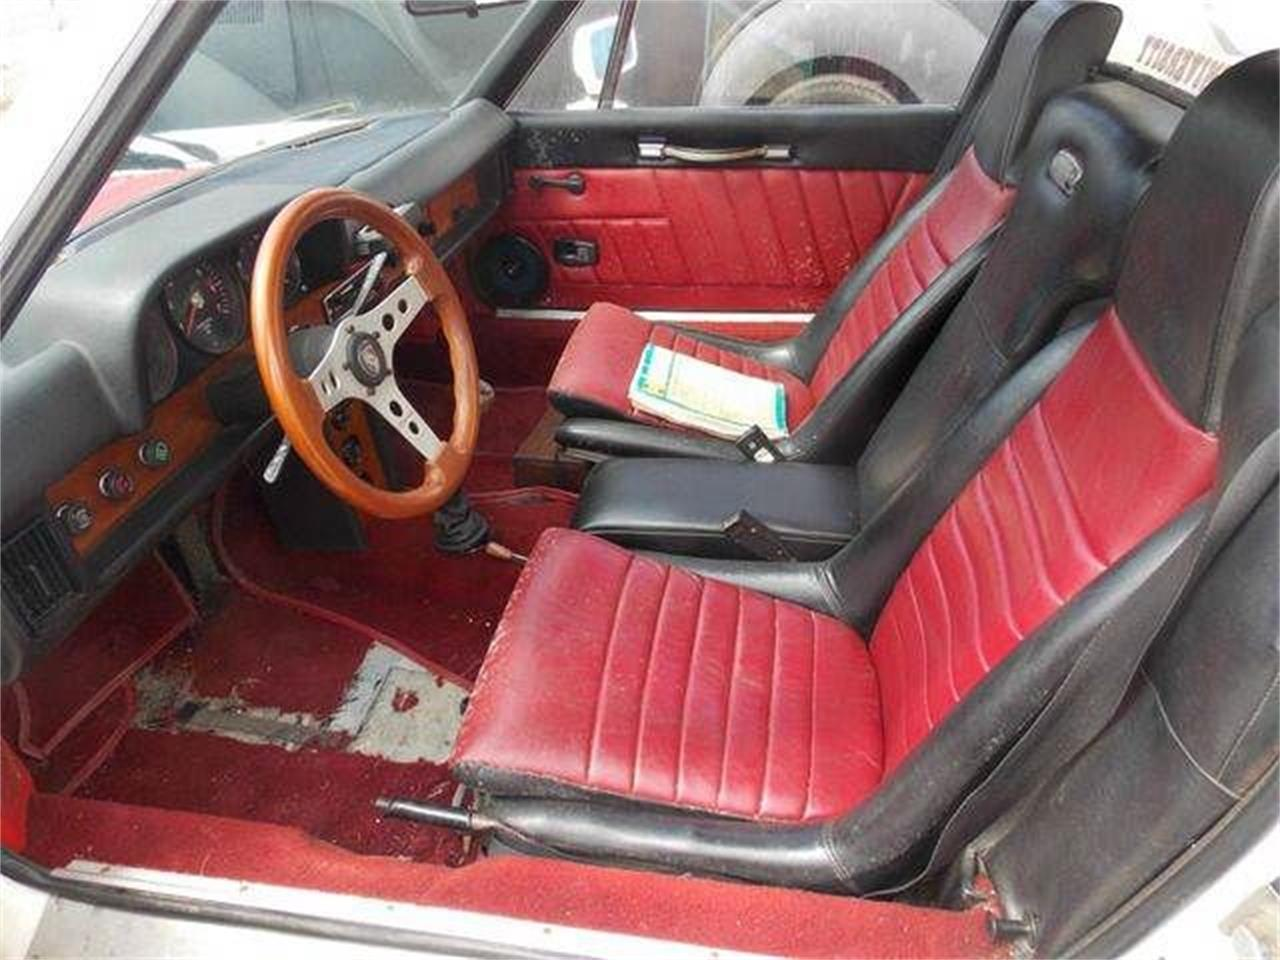 1973 Porsche 914 for sale in Cadillac, MI – photo 8